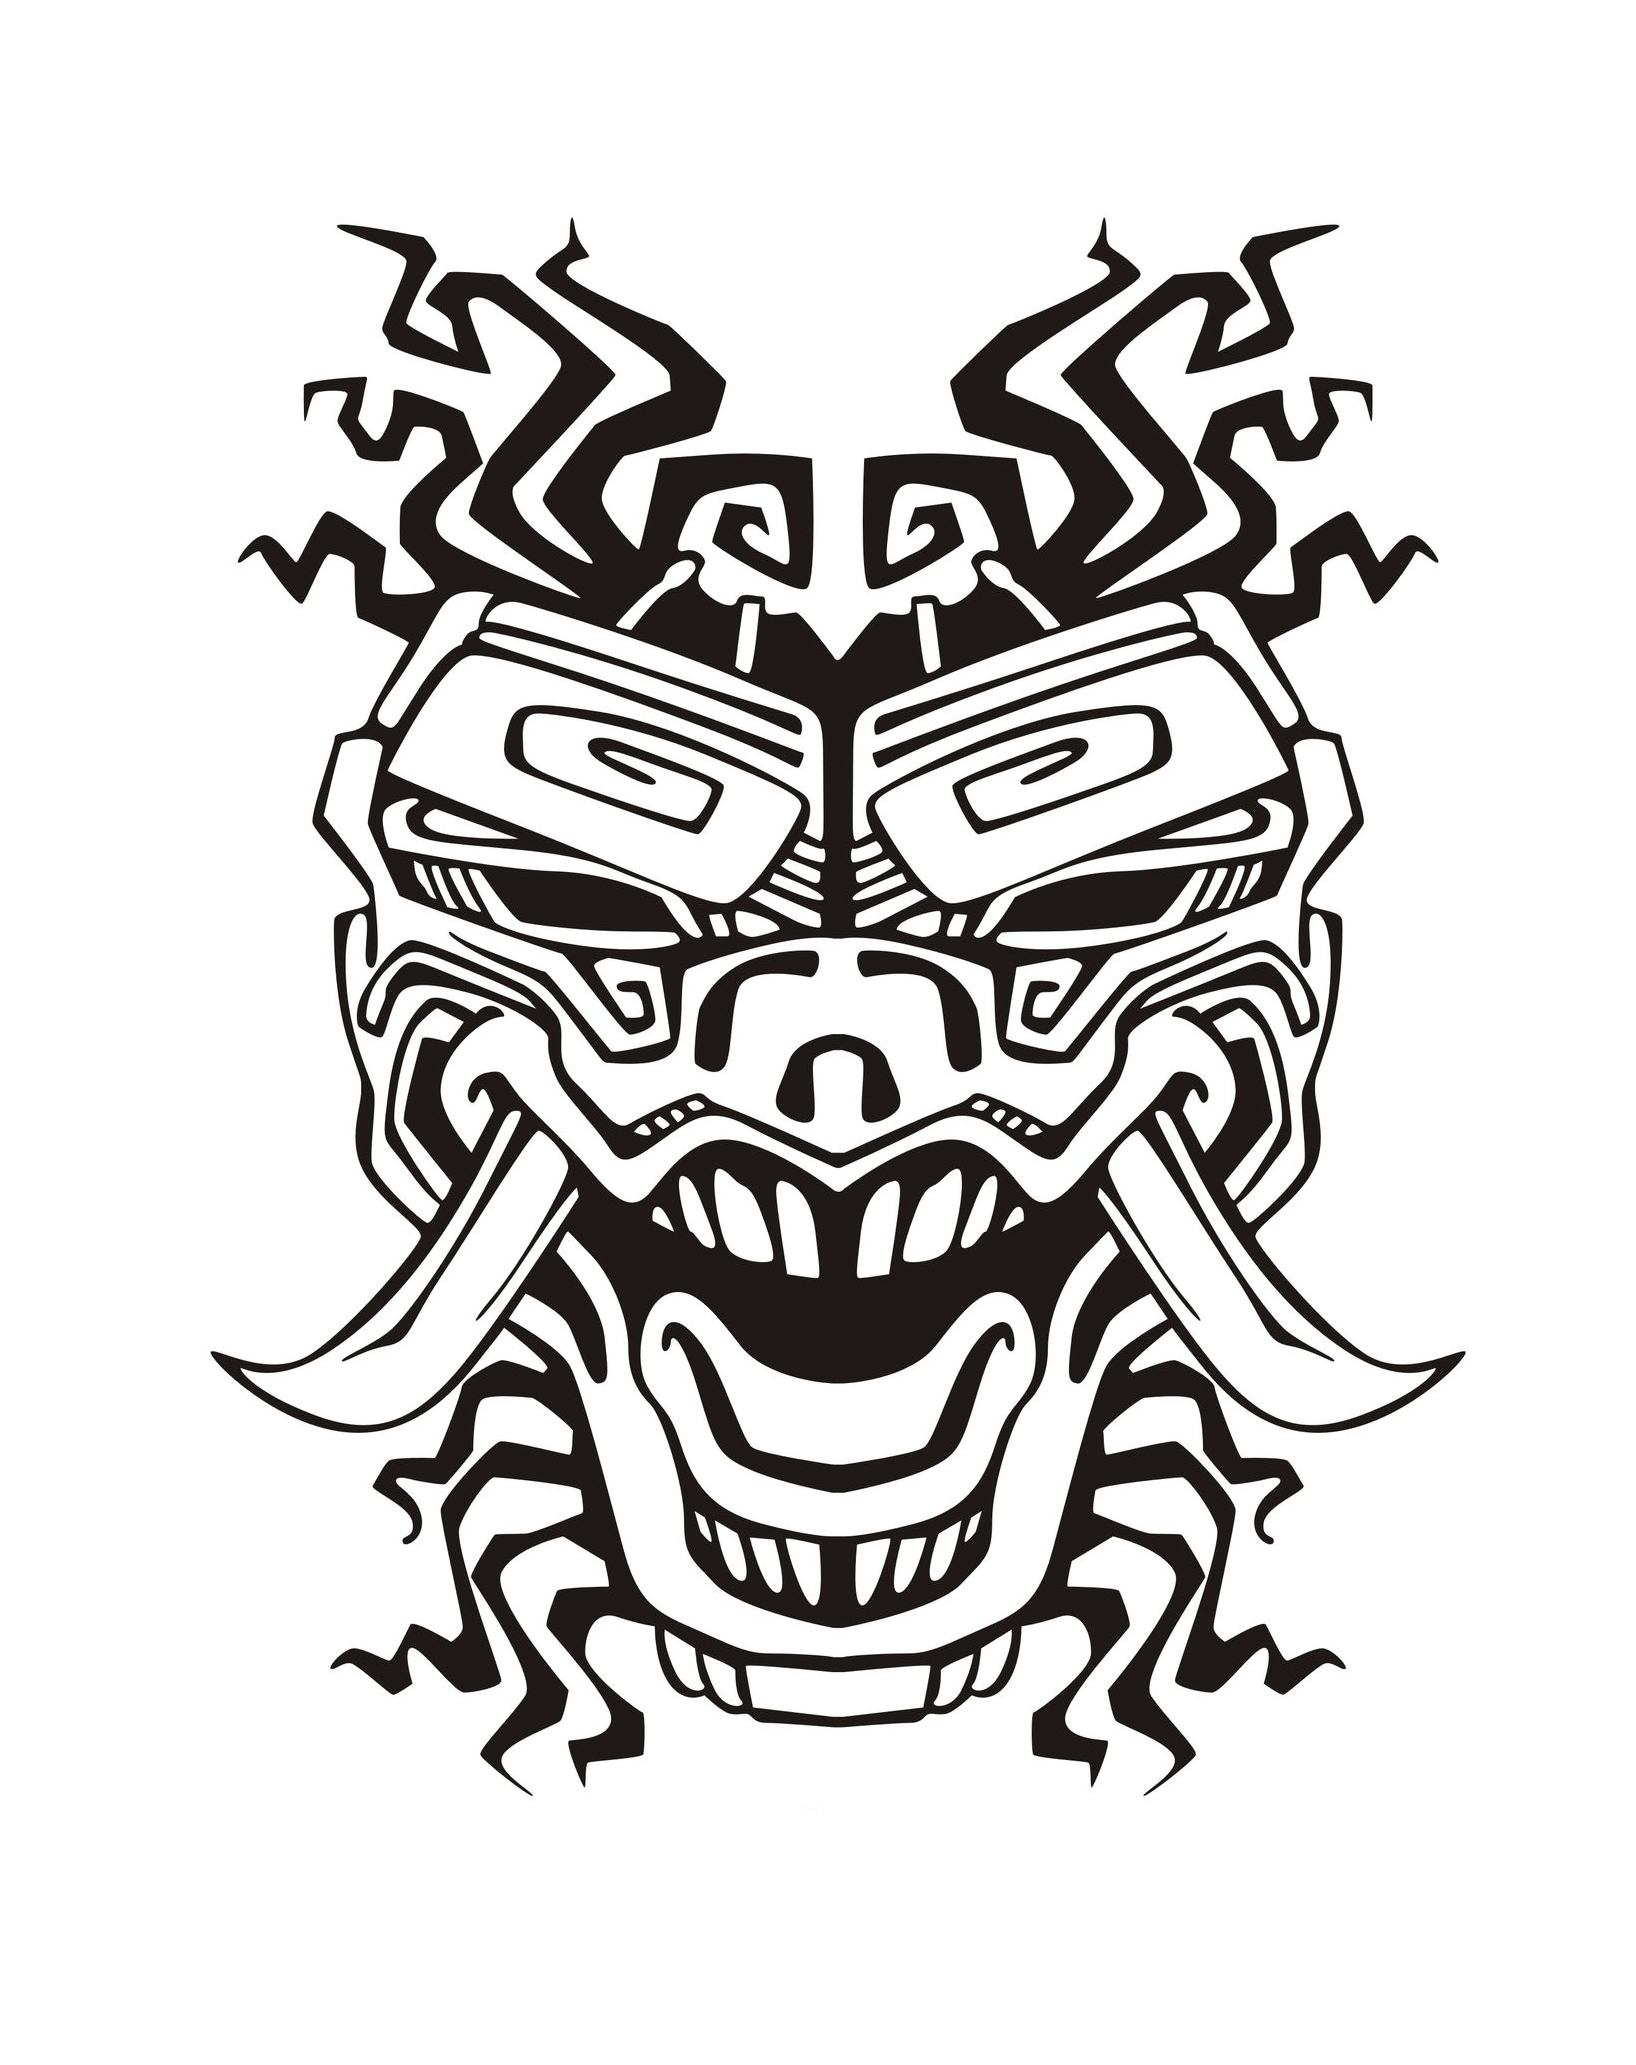 Coloring adult mask inspiration inca mayan aztec 2